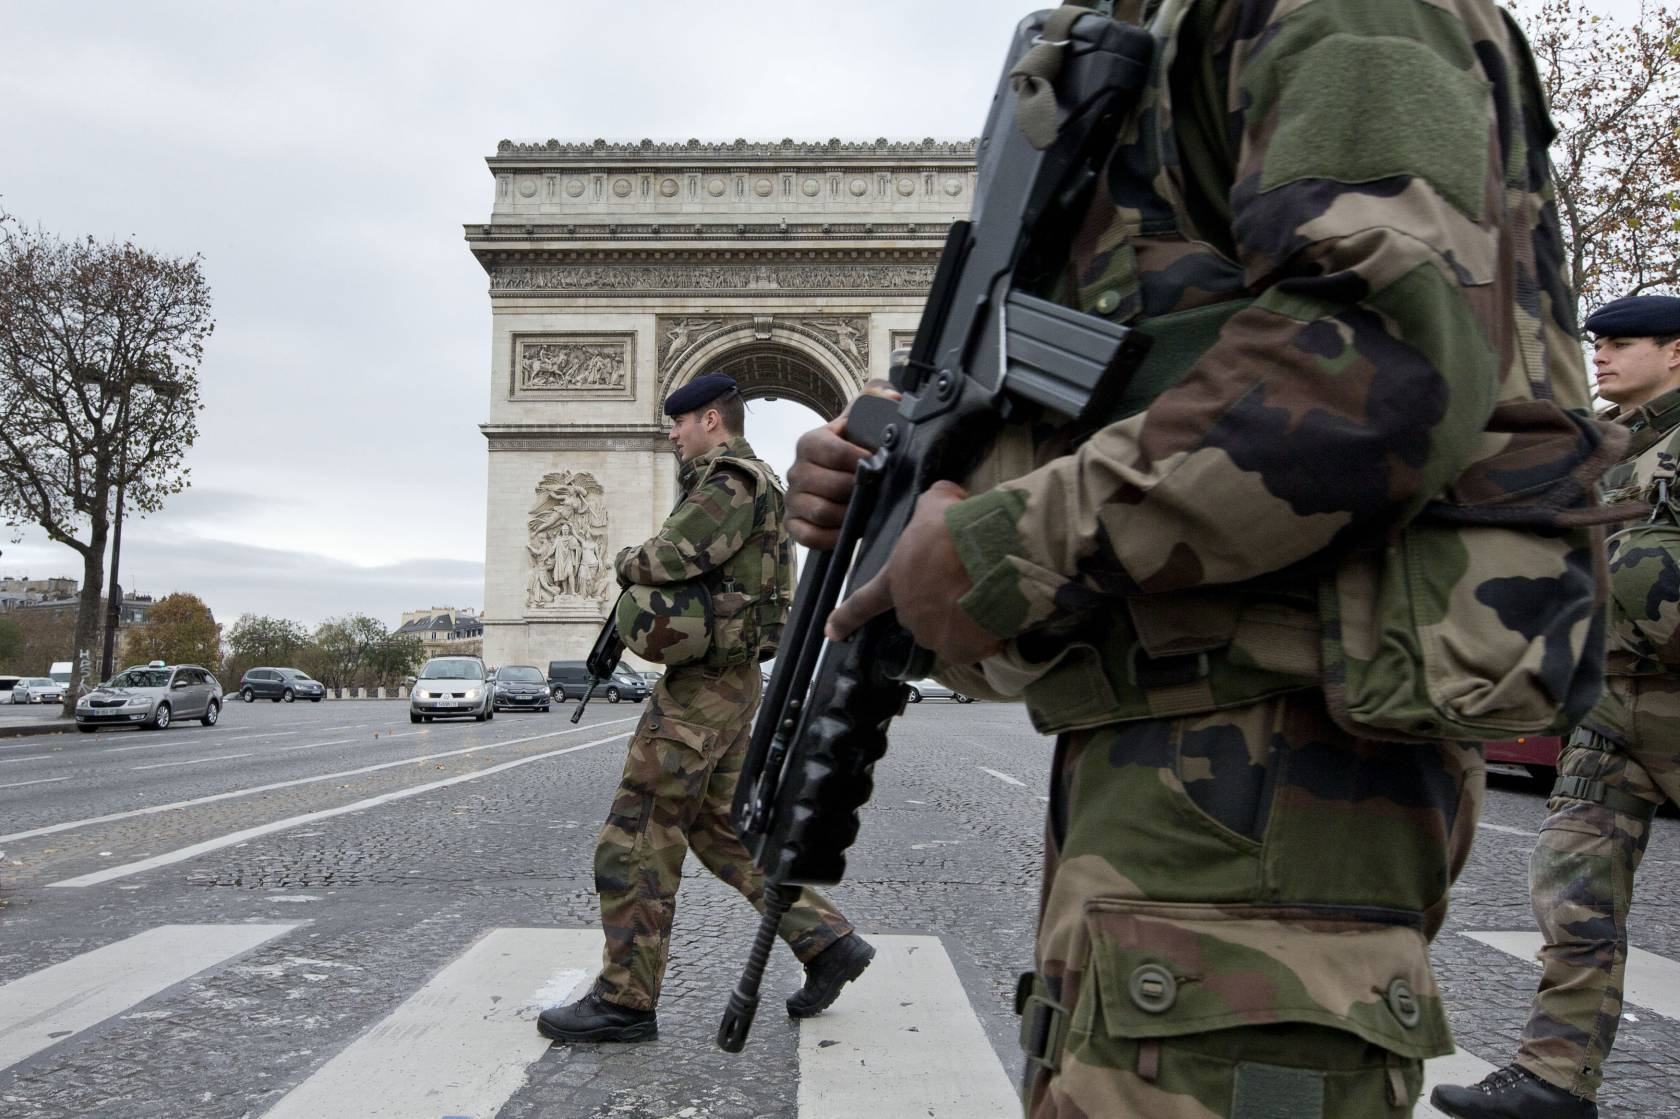 French soldiers cross the Champs Elysees avenue passing the Arc de Triomphe.